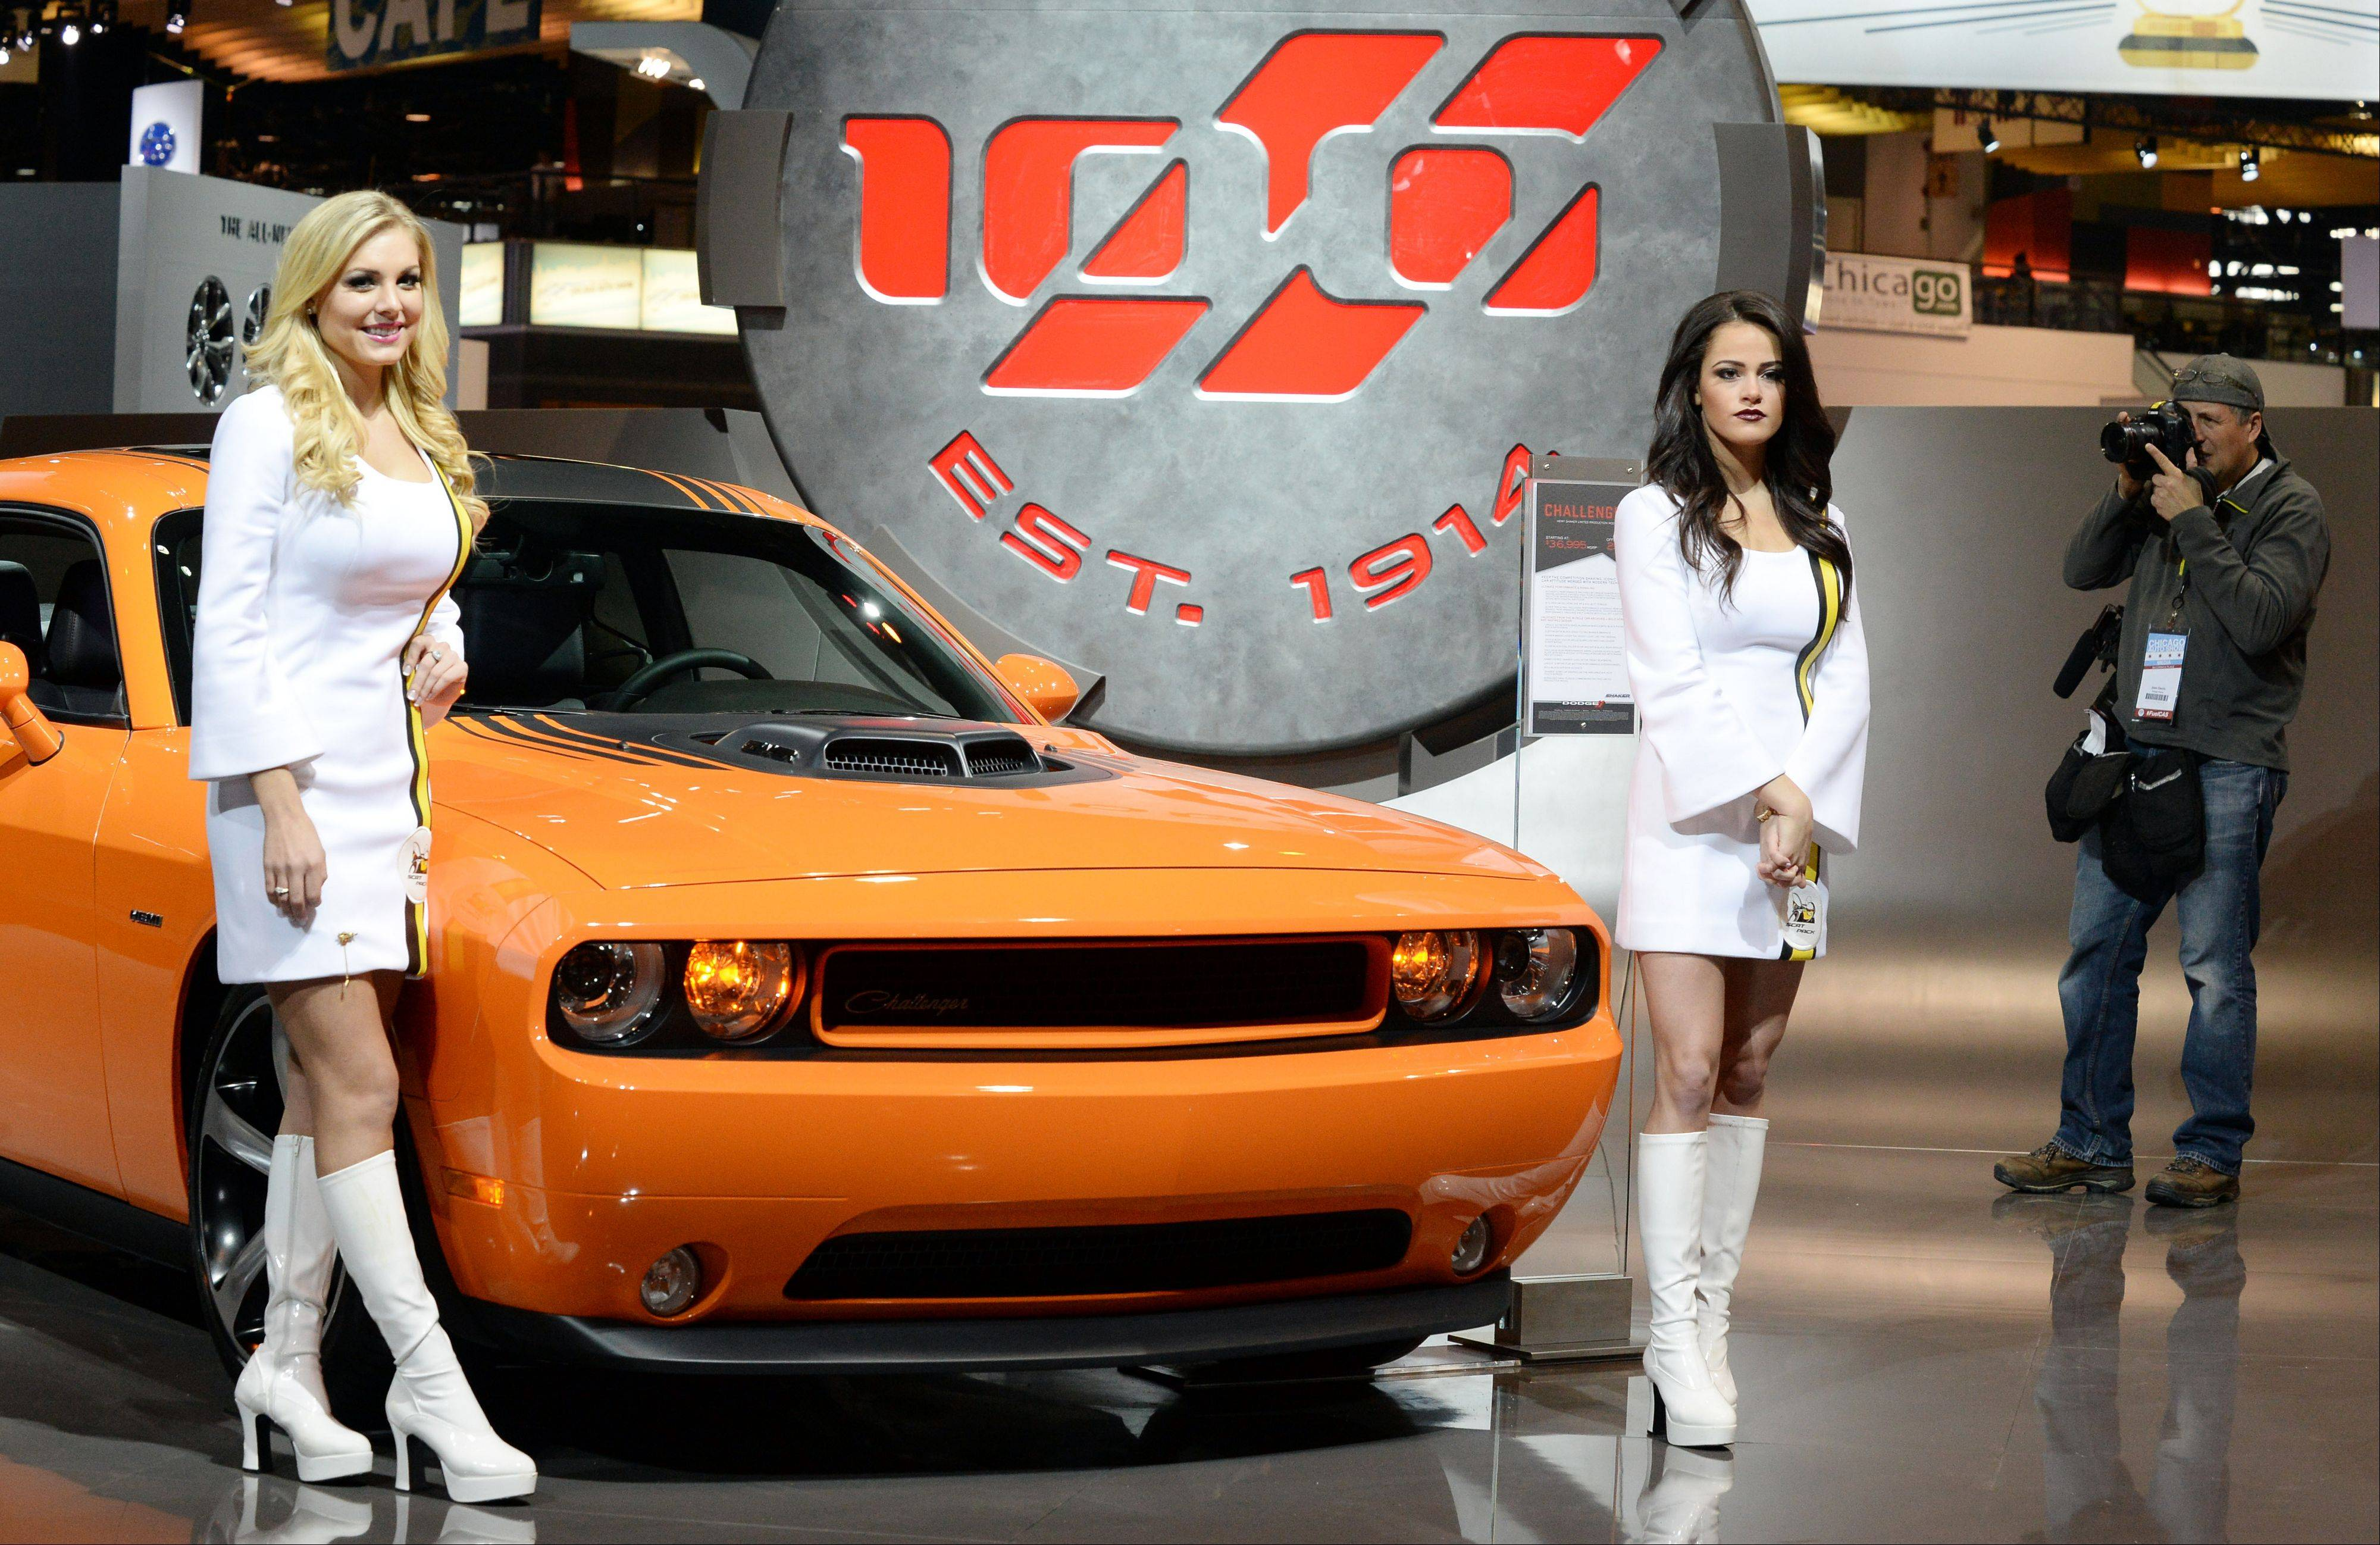 Cars and models at the Chicago Auto Show are both crowd pleasers.